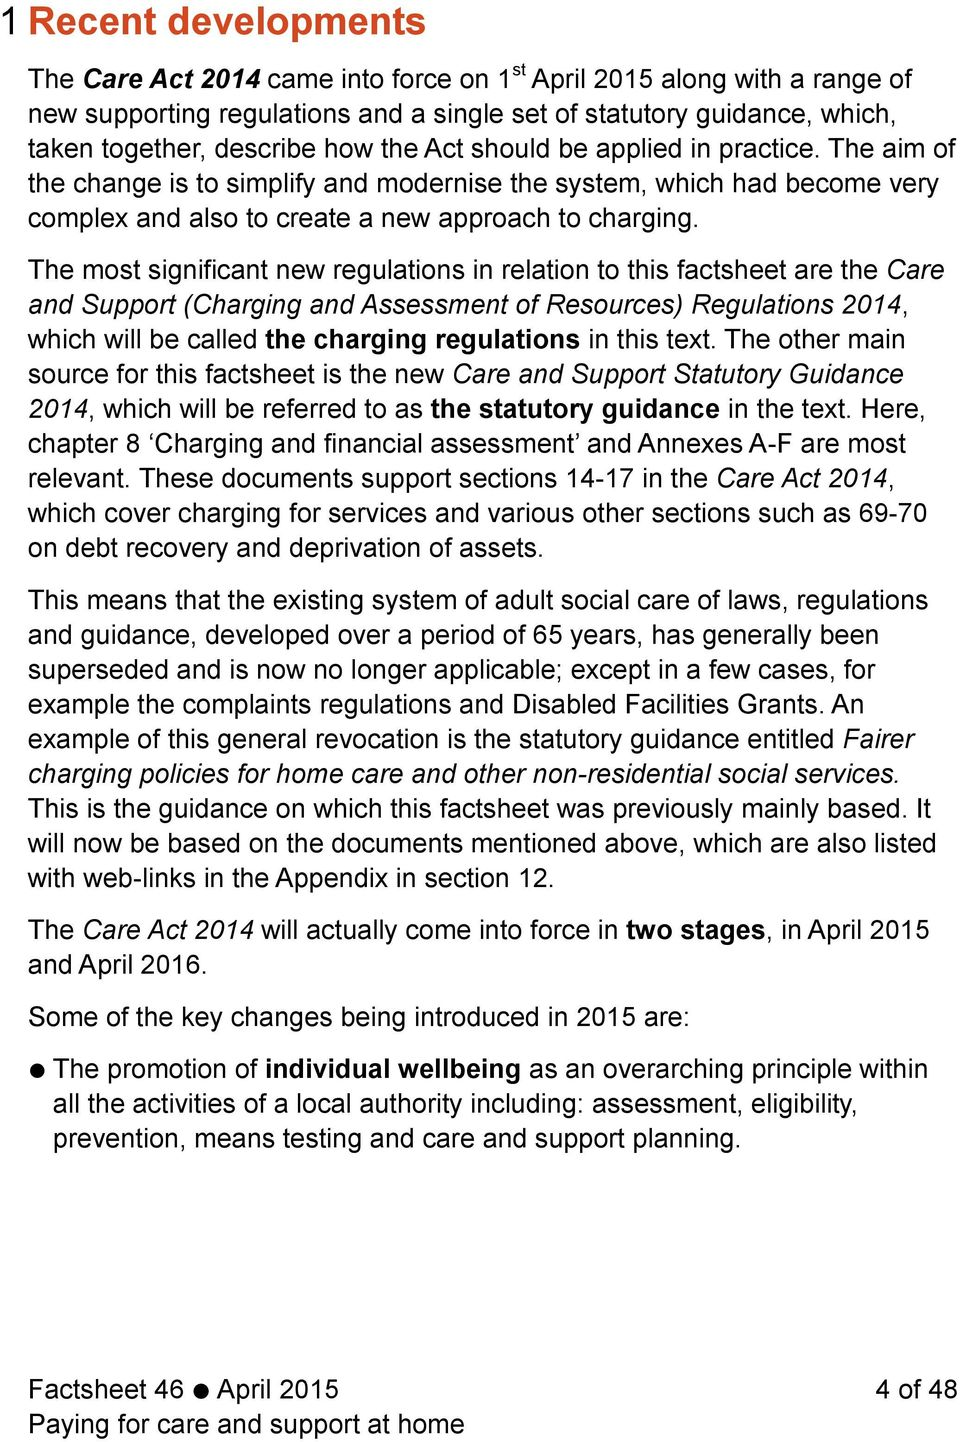 The most significant new regulations in relation to this factsheet are the Care and Support (Charging and Assessment of Resources) Regulations 2014, which will be called the charging regulations in